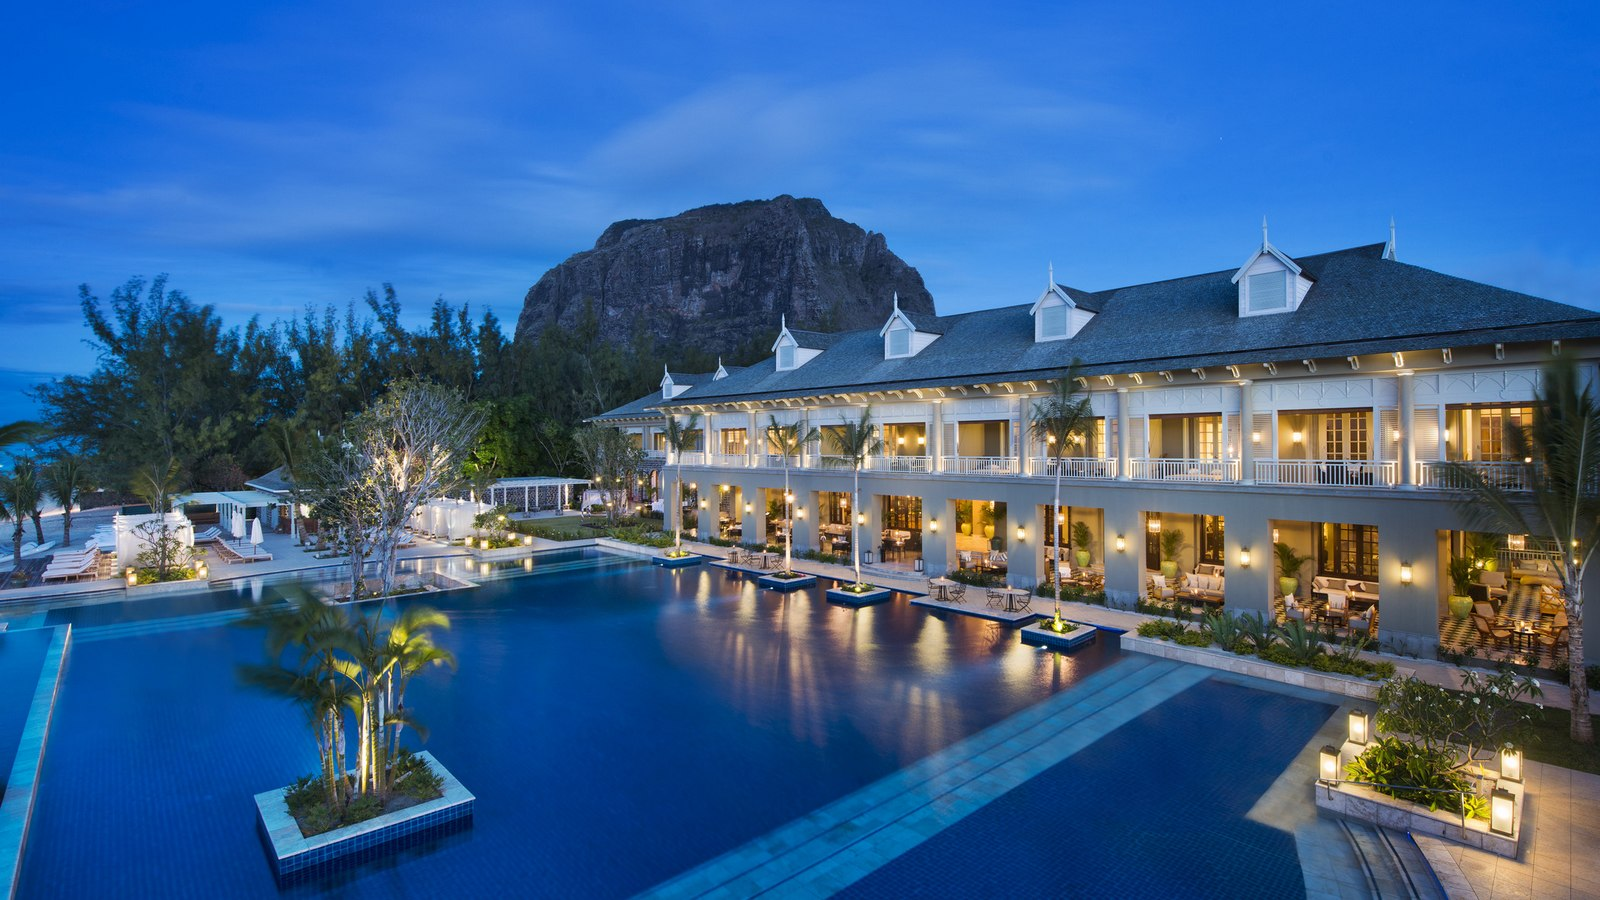 St regis mauritius unveils its 1600 sq m luxury villa for St regis